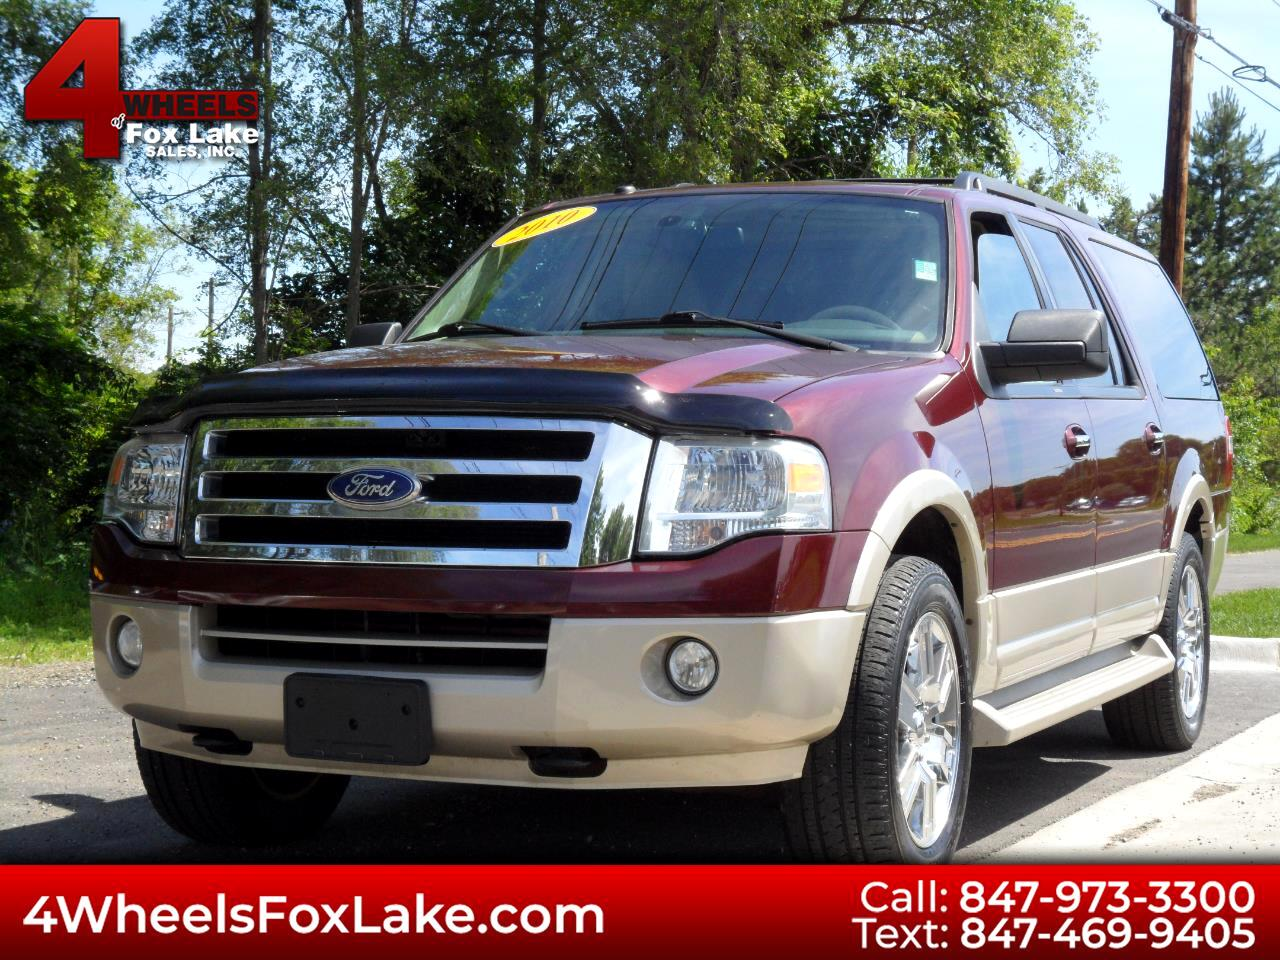 2010 Ford Expedition EL EL Eddie Bauer 4WD